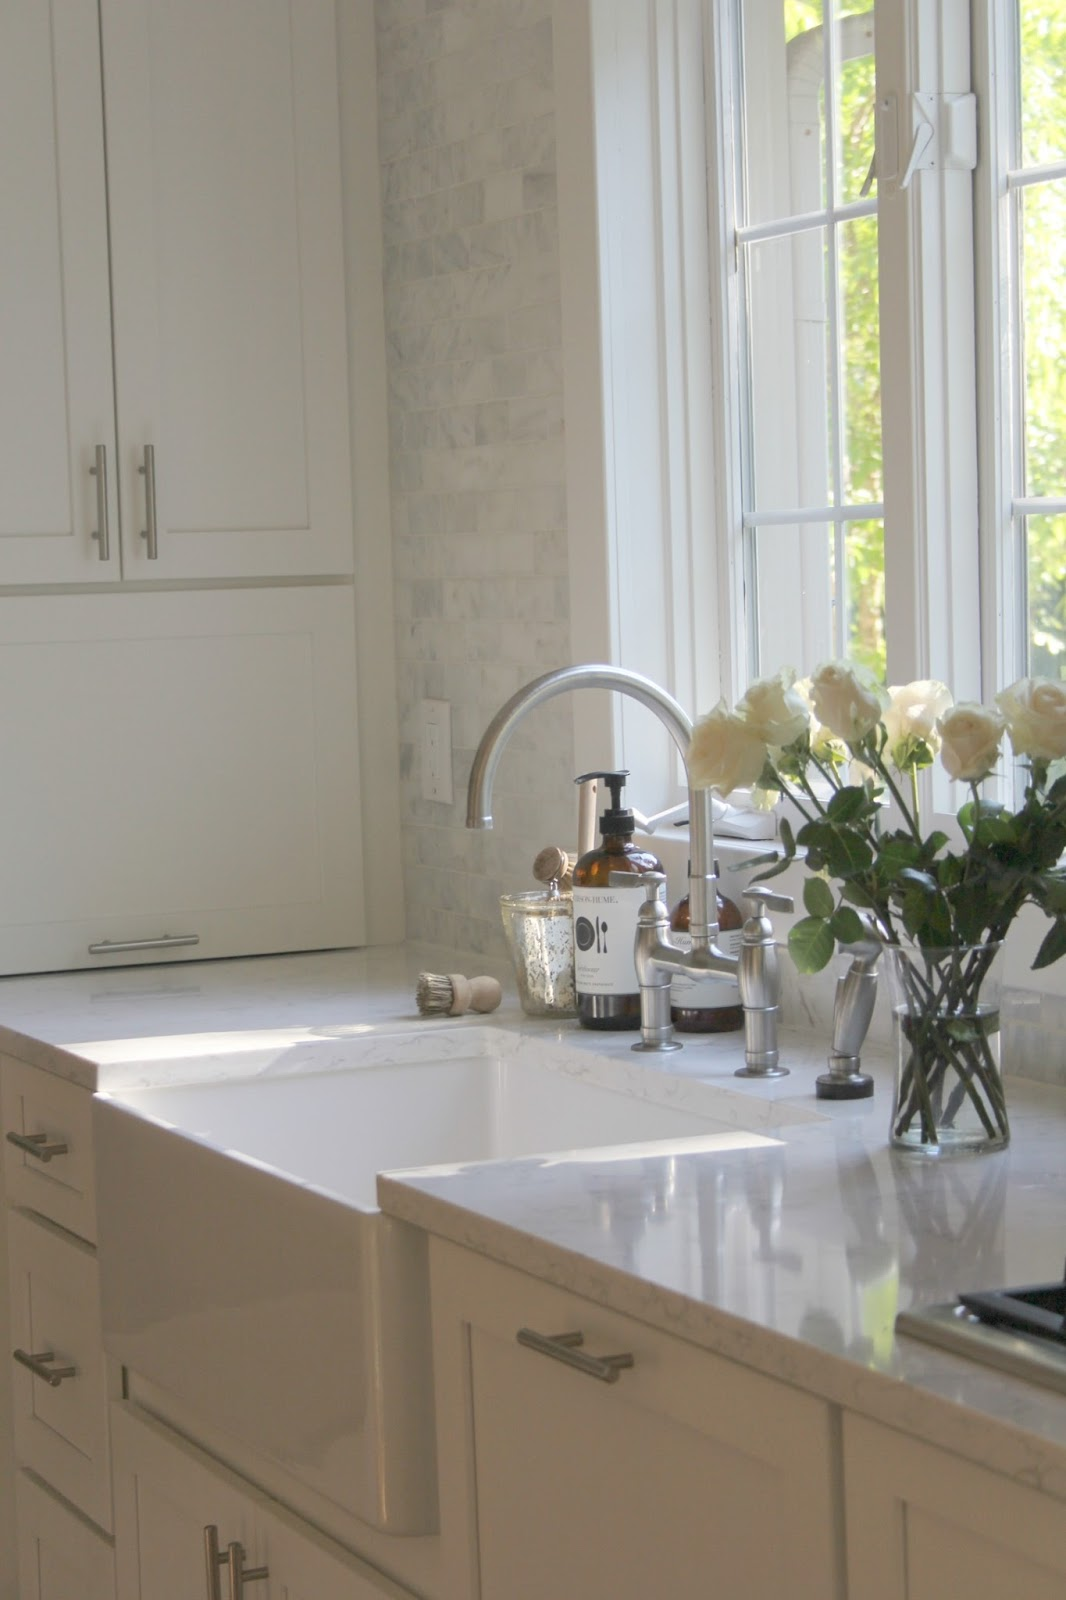 Kitchen Countertop Cabinets How To Choose The Right White Quartz For Kitchen Countertops